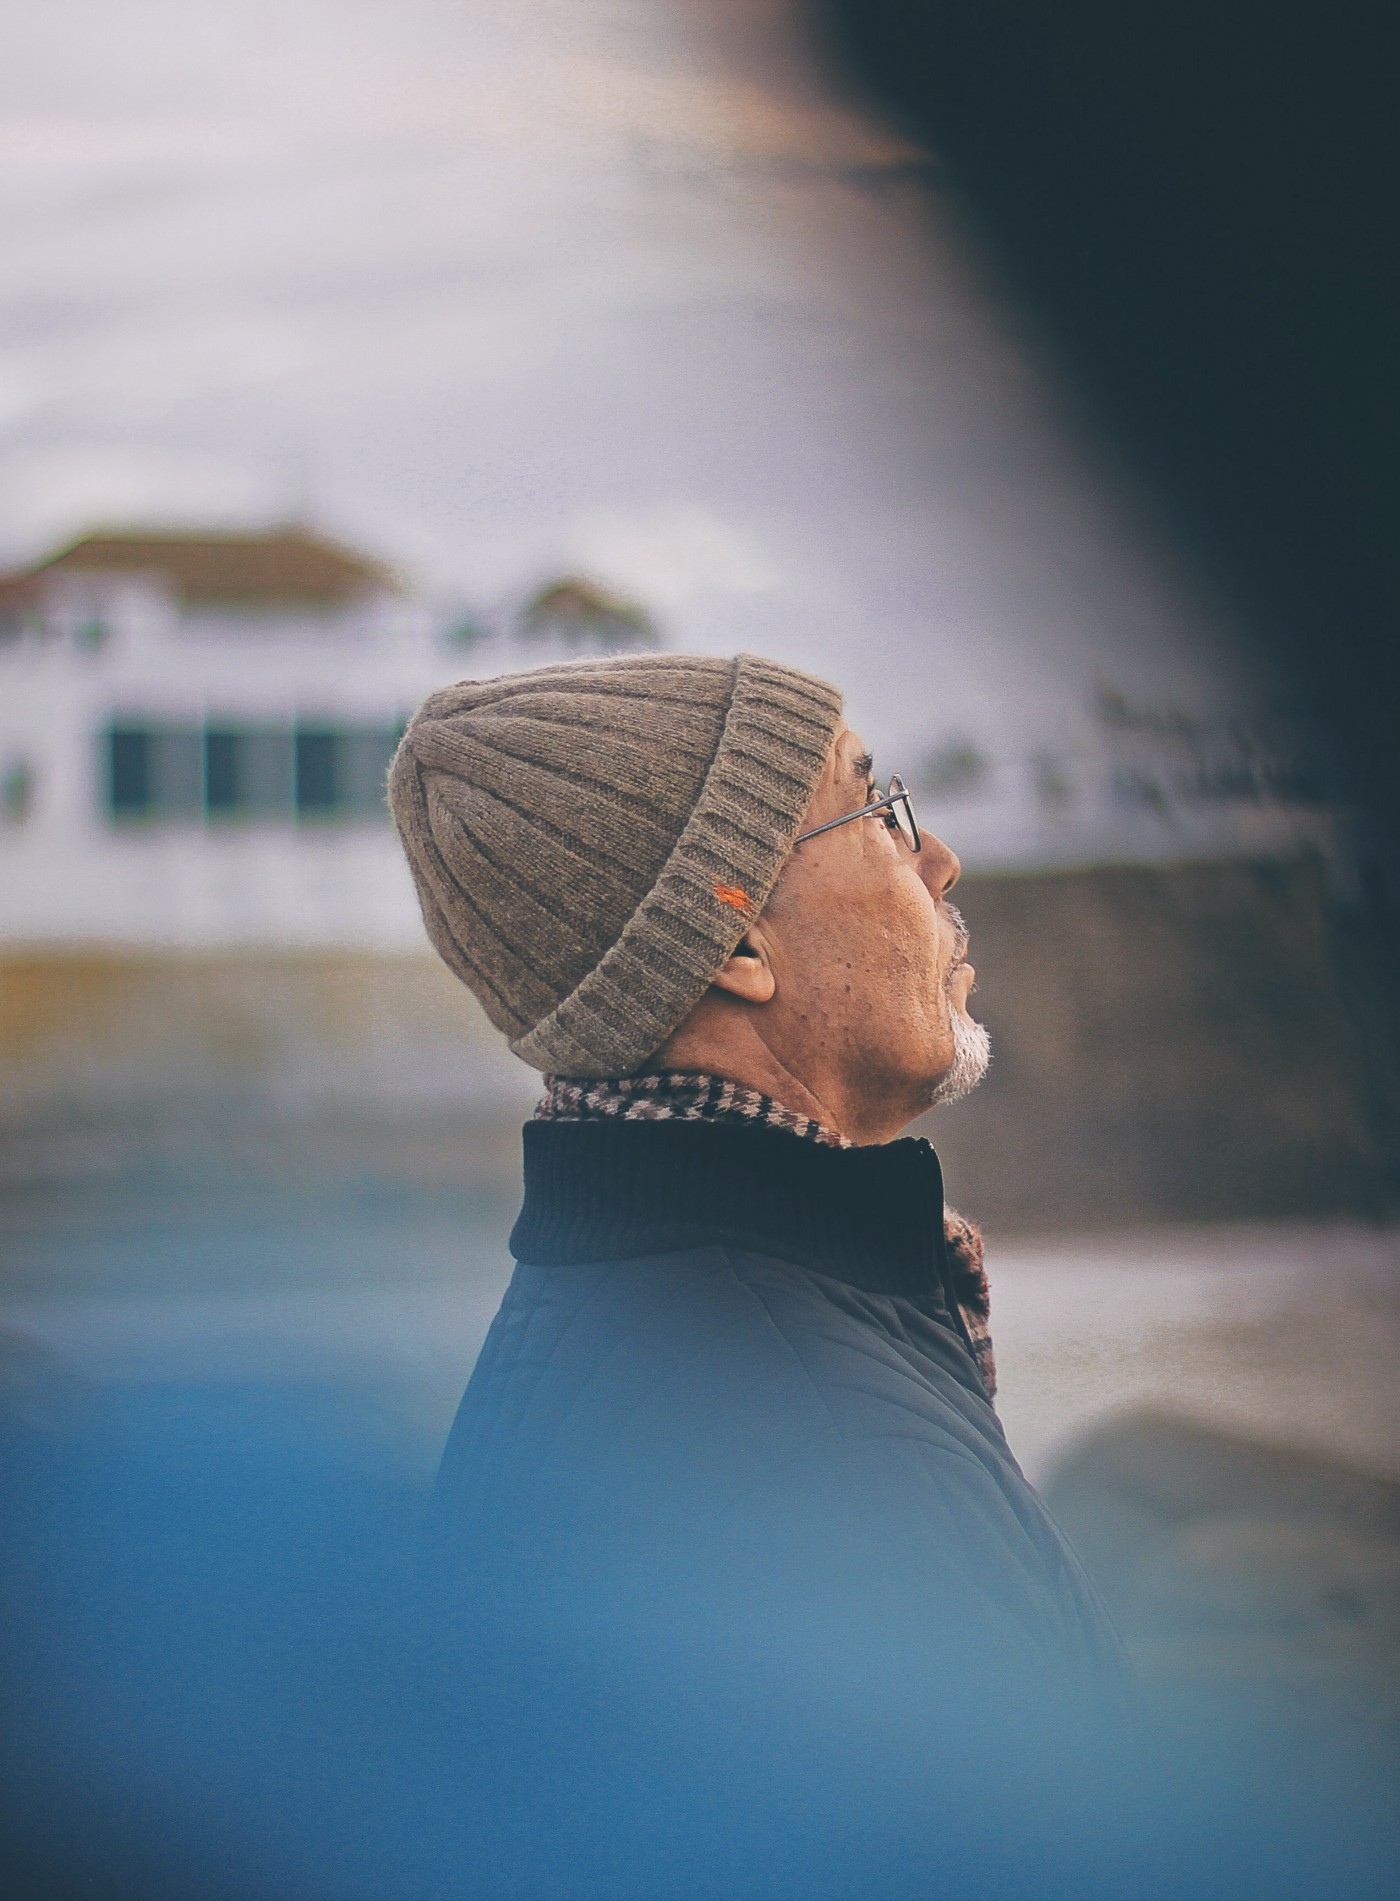 An older gentleman in glasses with scarf, coat, and stocking cap, outside looking up into the sky.